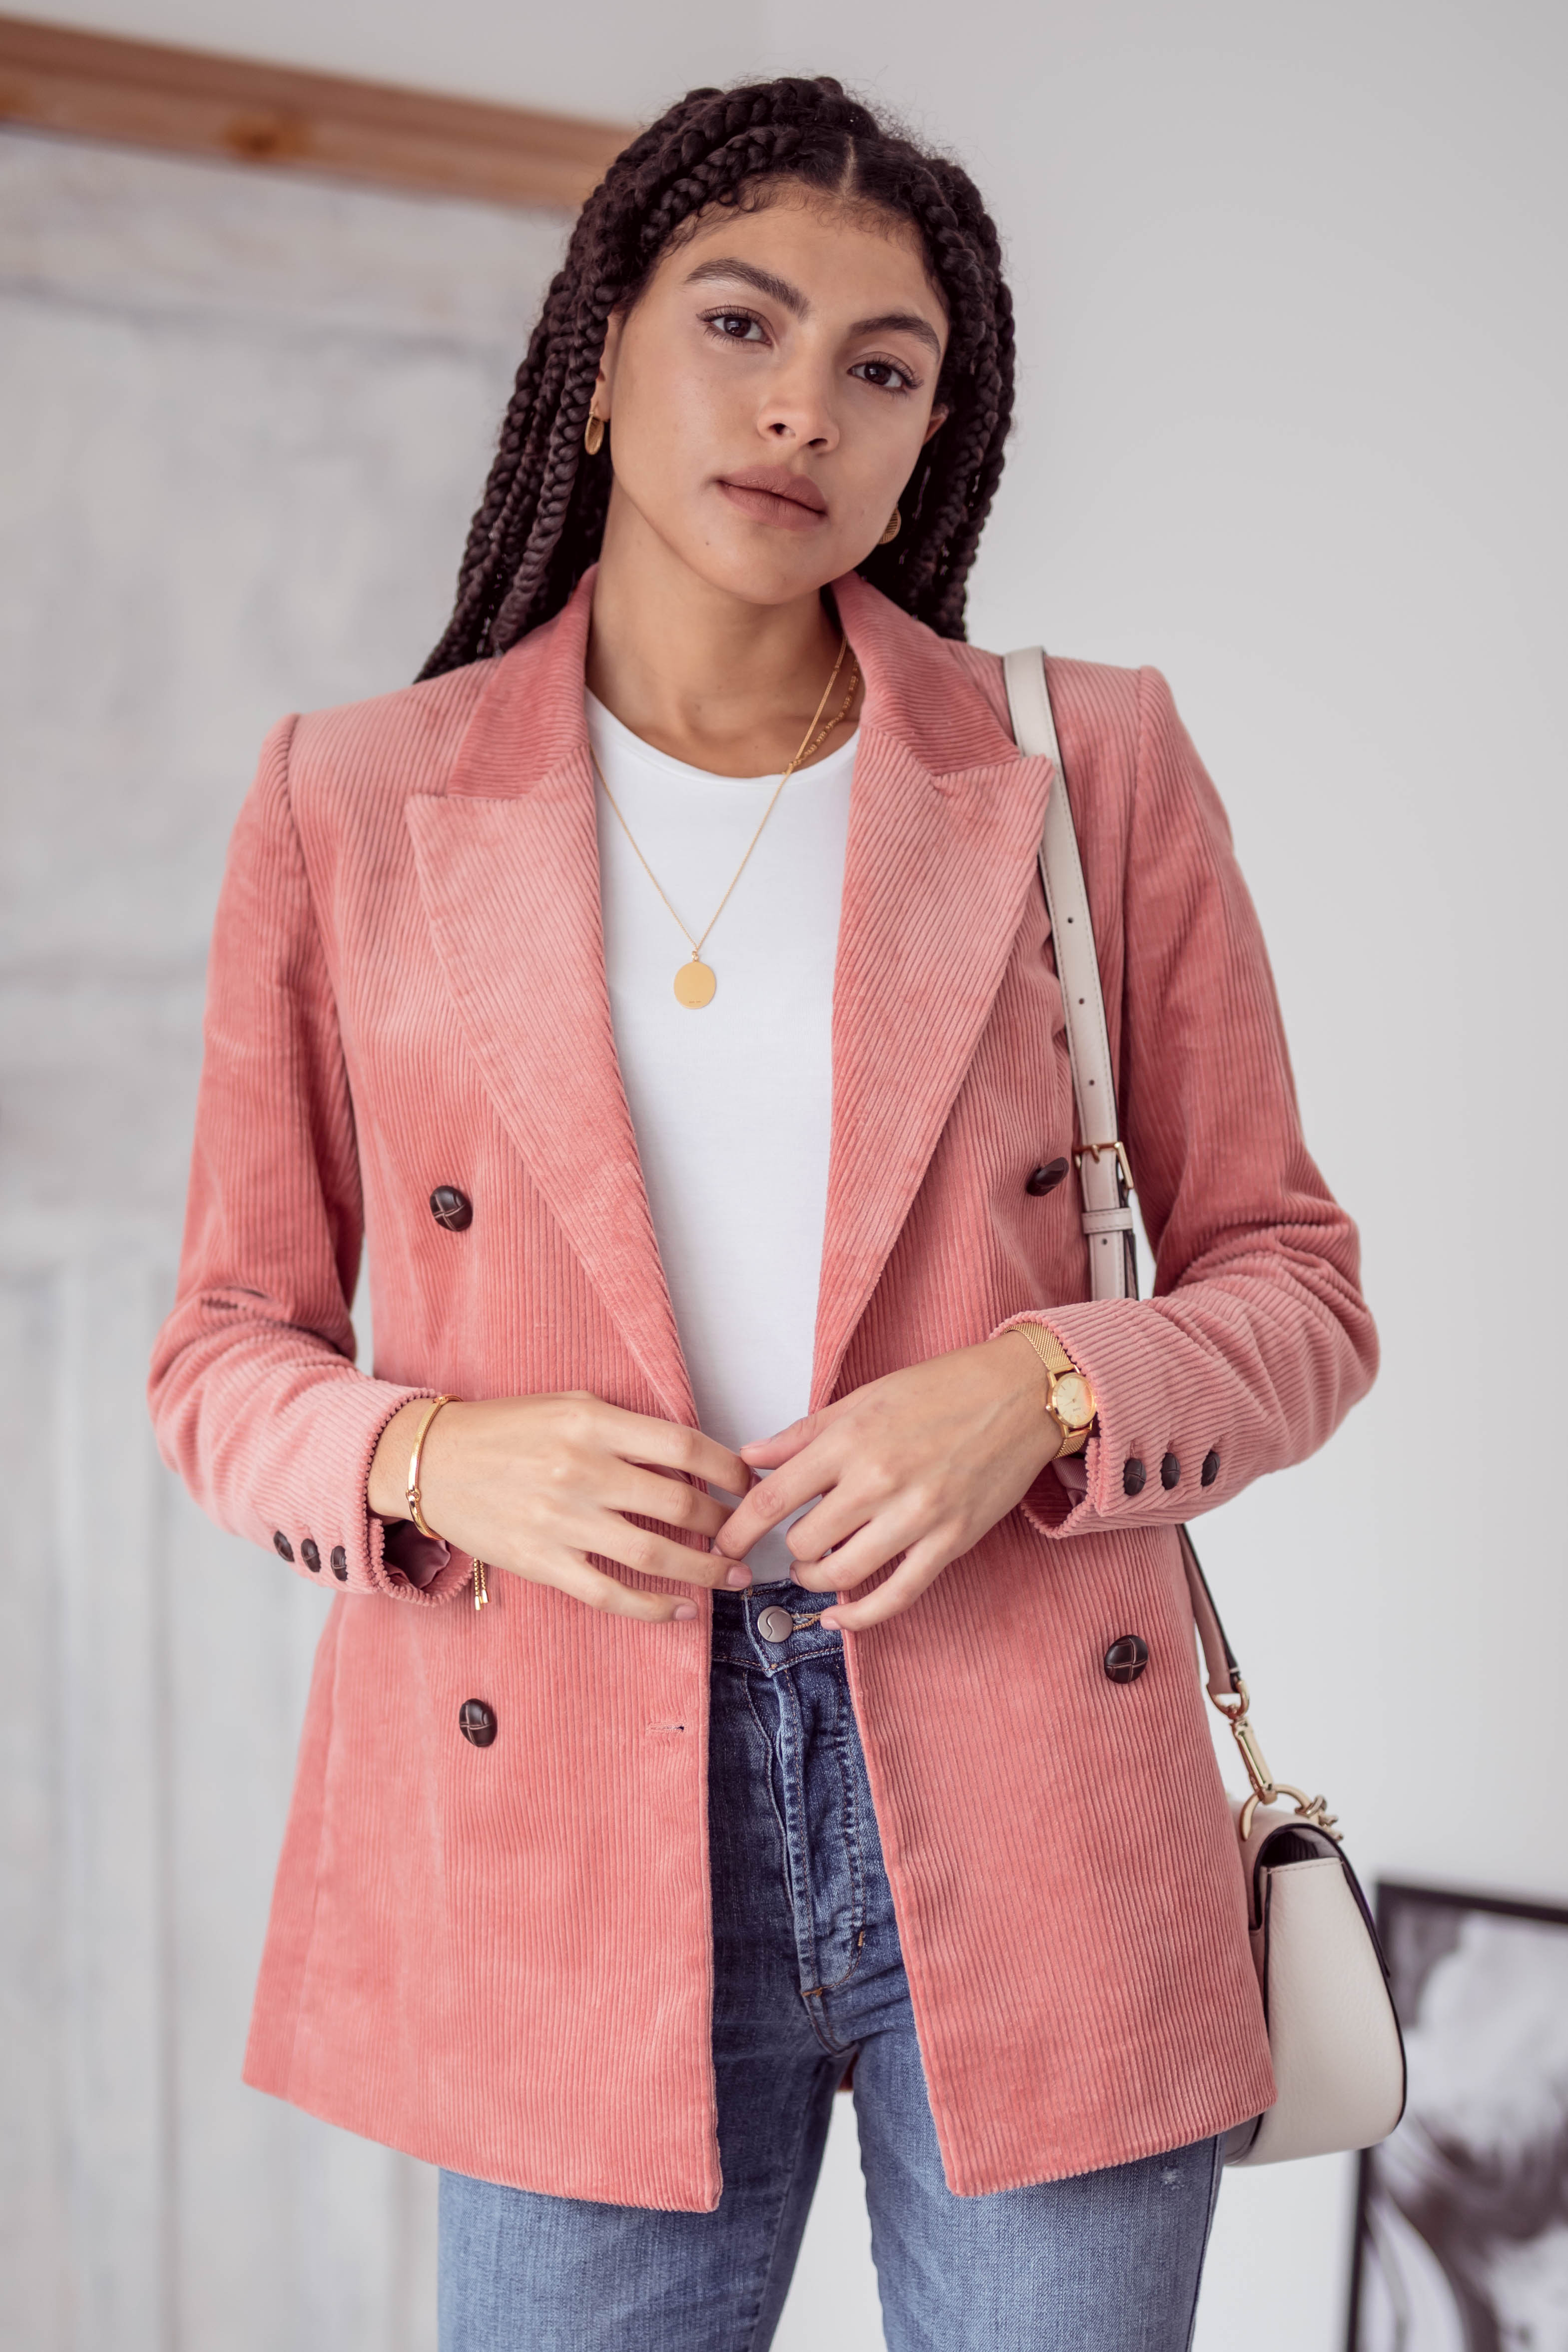 How to wear the pink double breasted corduroy blazer